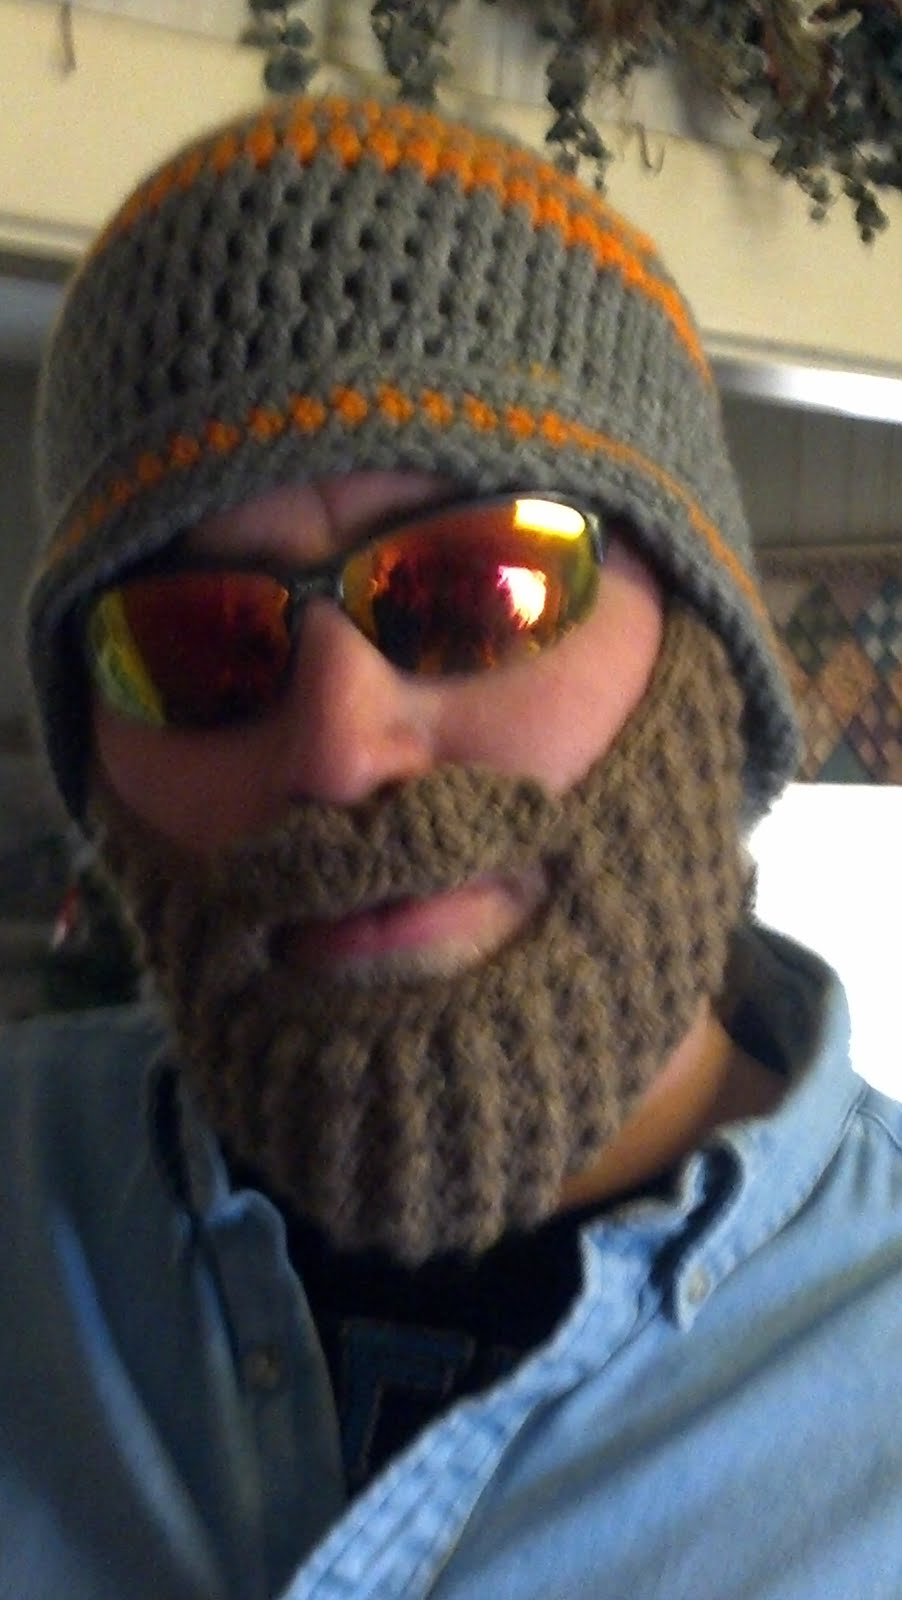 Free Crochet Patterns Hats With Beards : Our 7 Acres: The Beard Hat - Crochet Tutorial